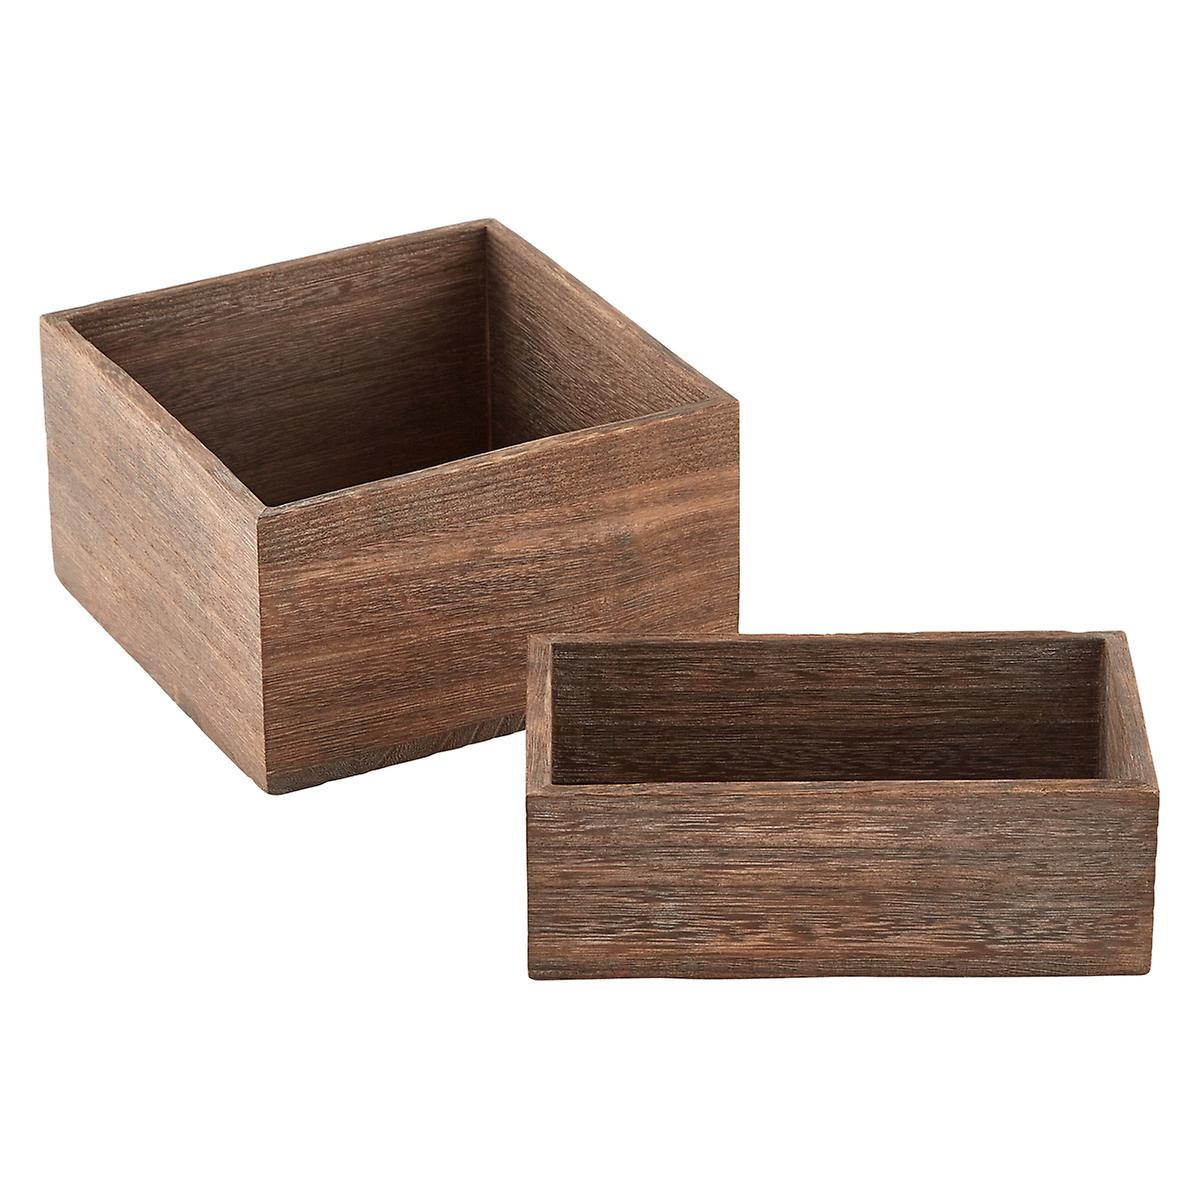 Feathergrain Containers